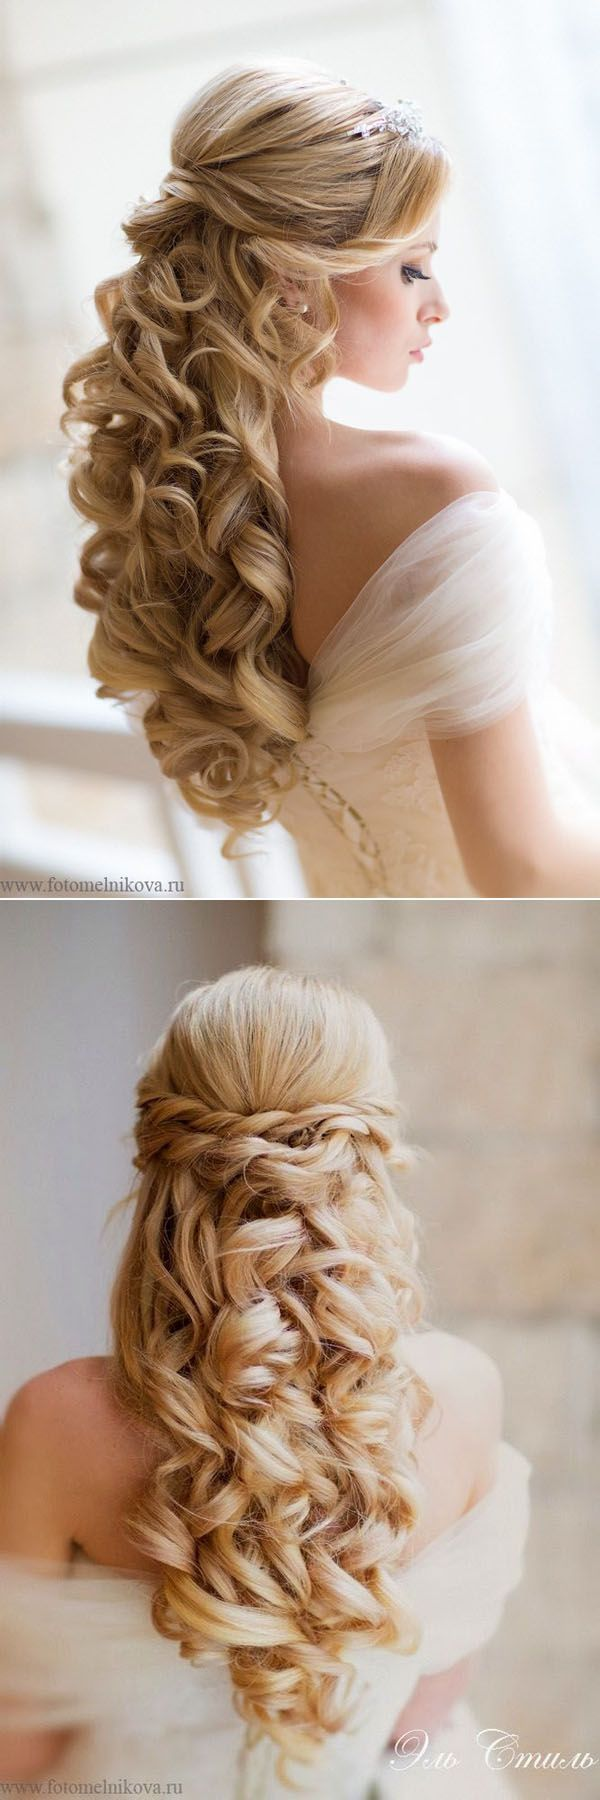 cool romantic wedding hairstyles best photos